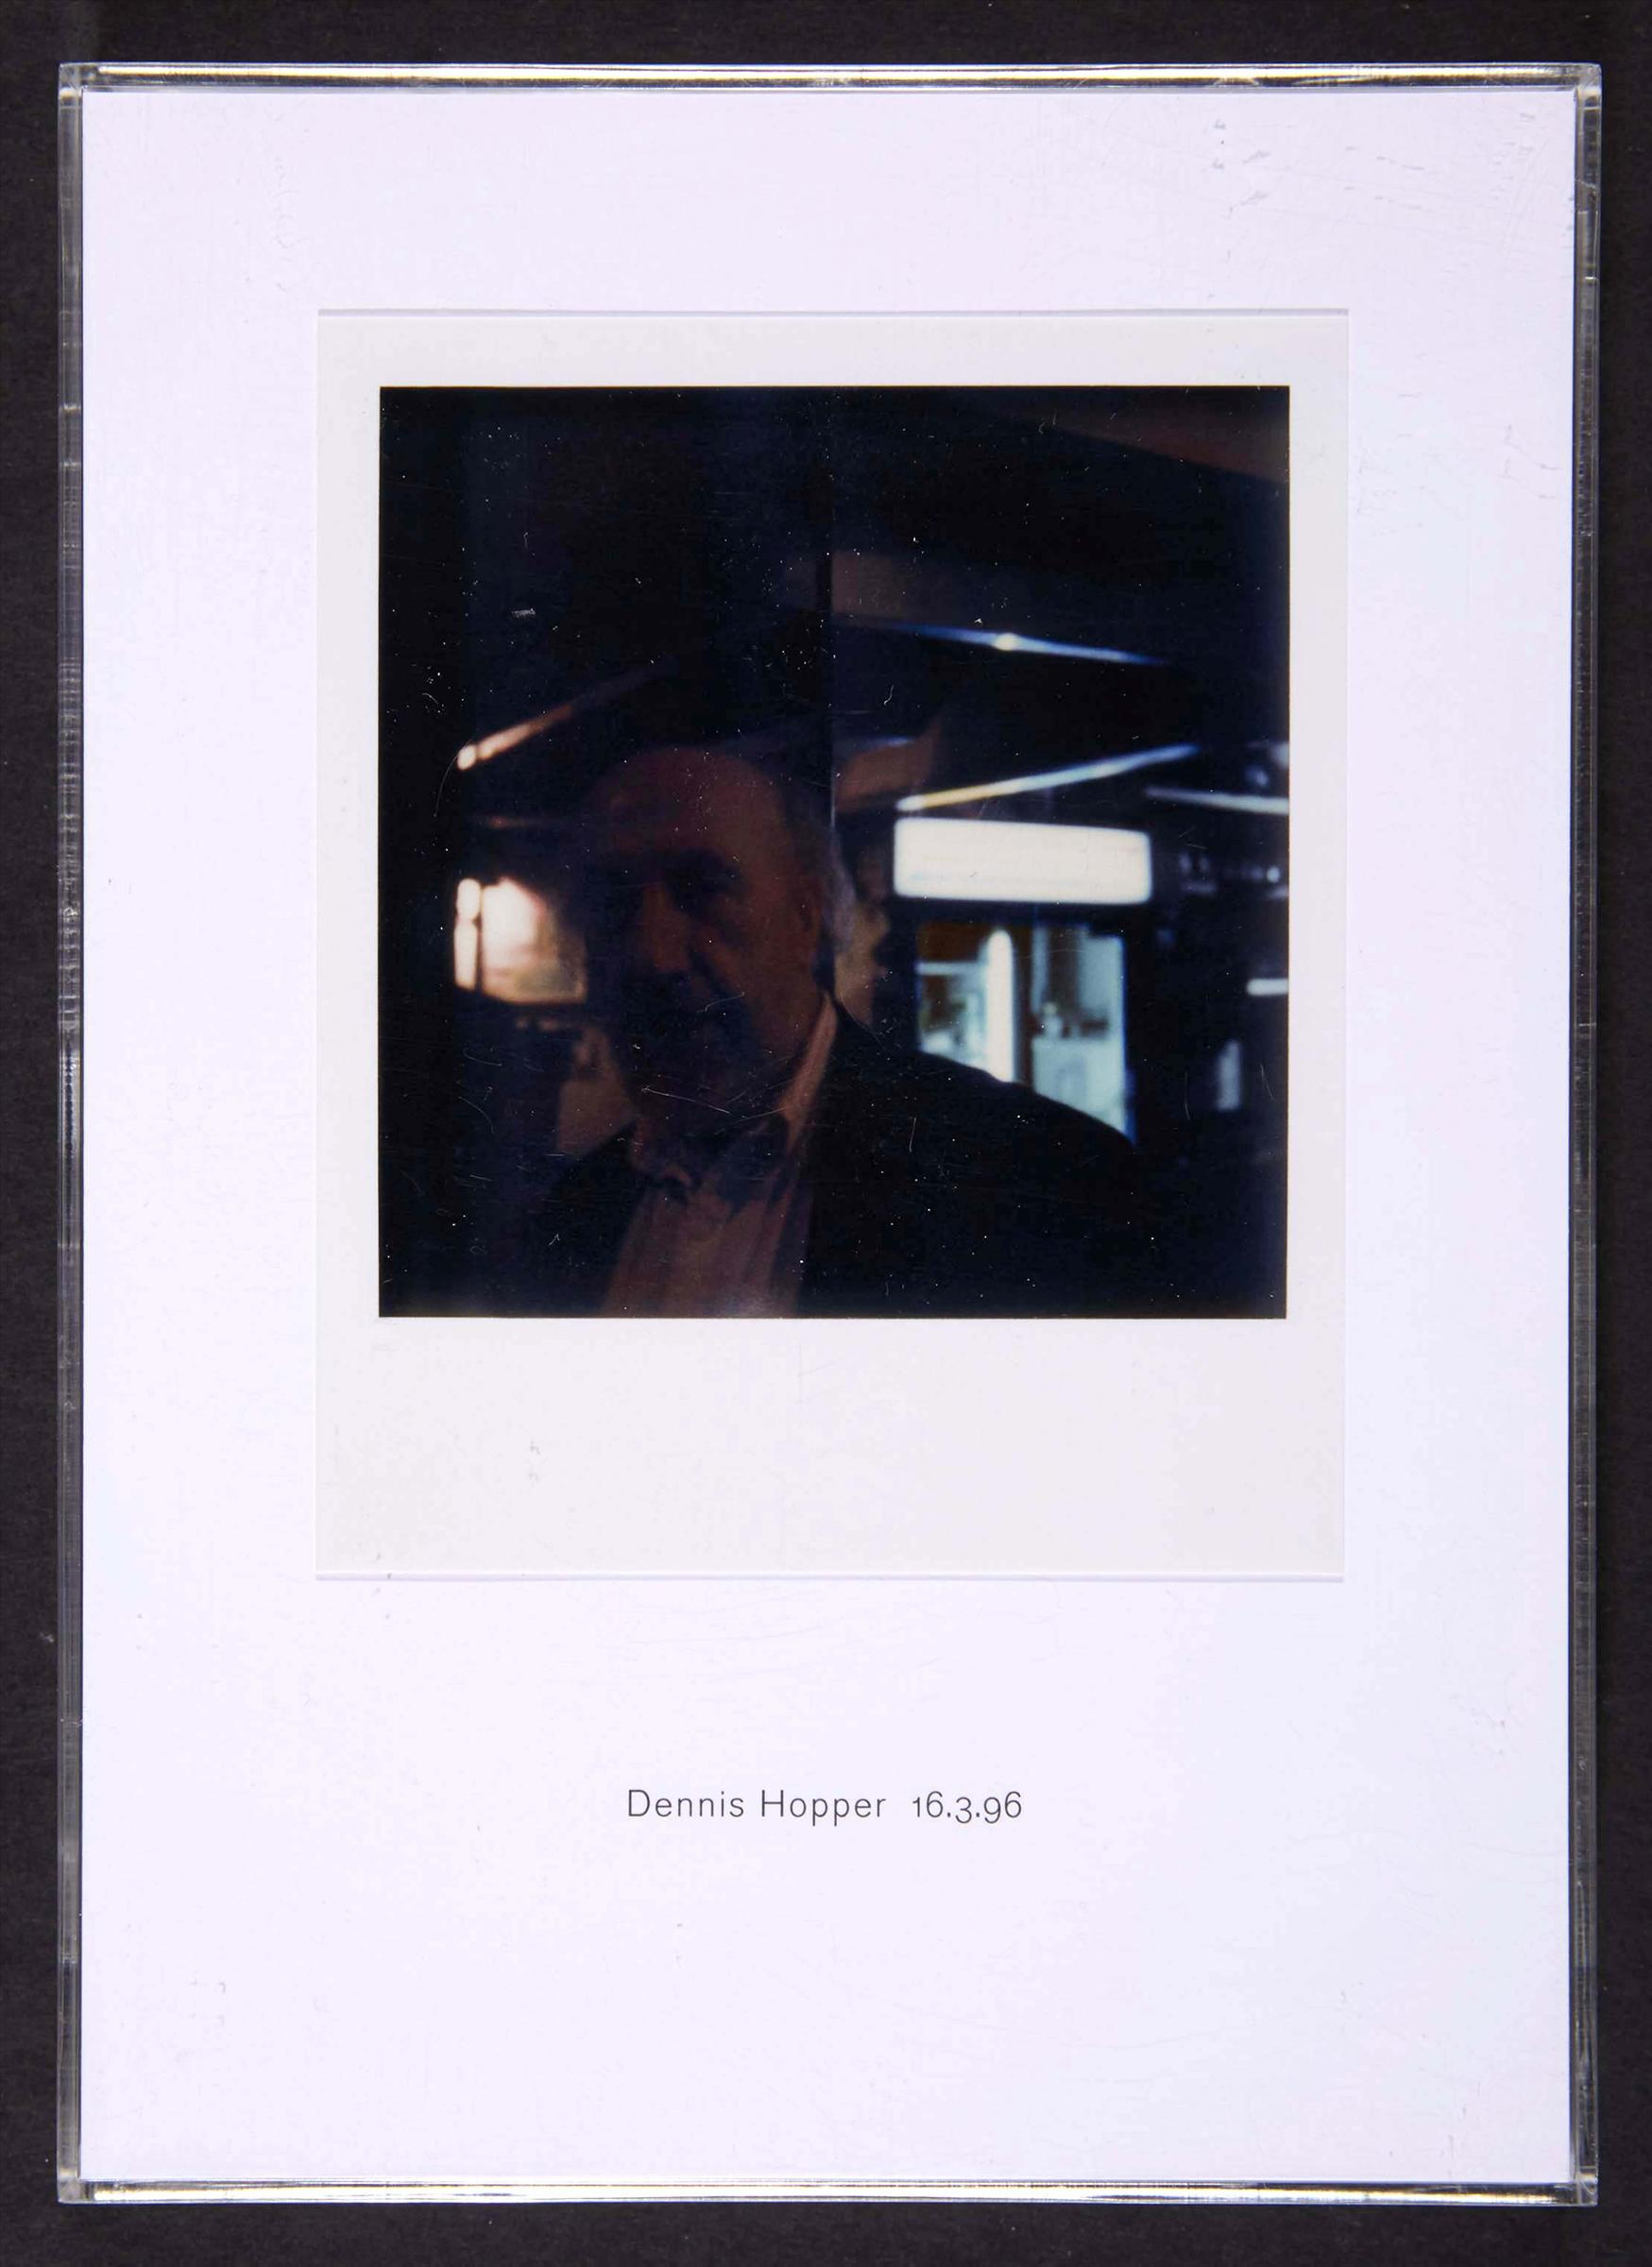 Dennis hopper young girl — pic 2